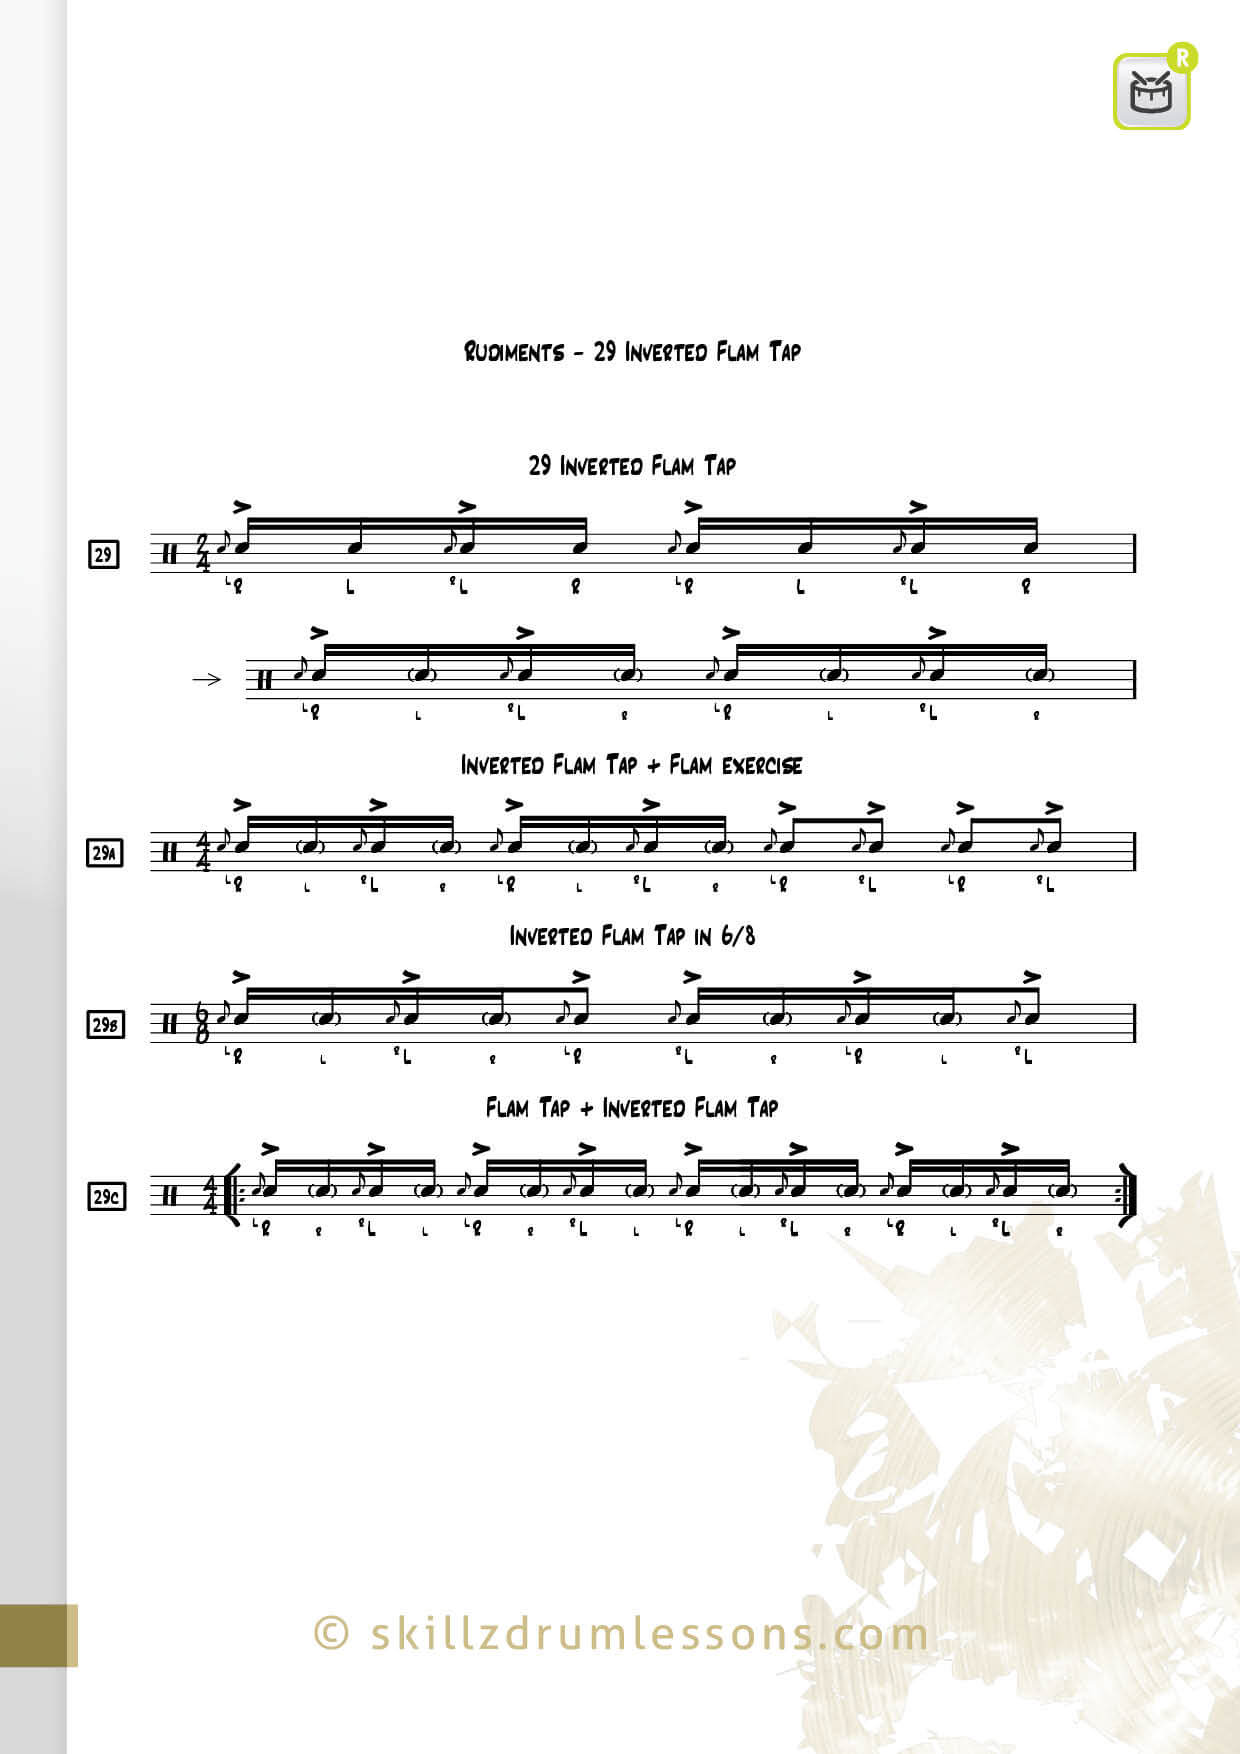 This is an image of the Official 40 Essential P.A.S. Rudiments #29 The Inverted Flam Tap by Skillz Drum Lessons